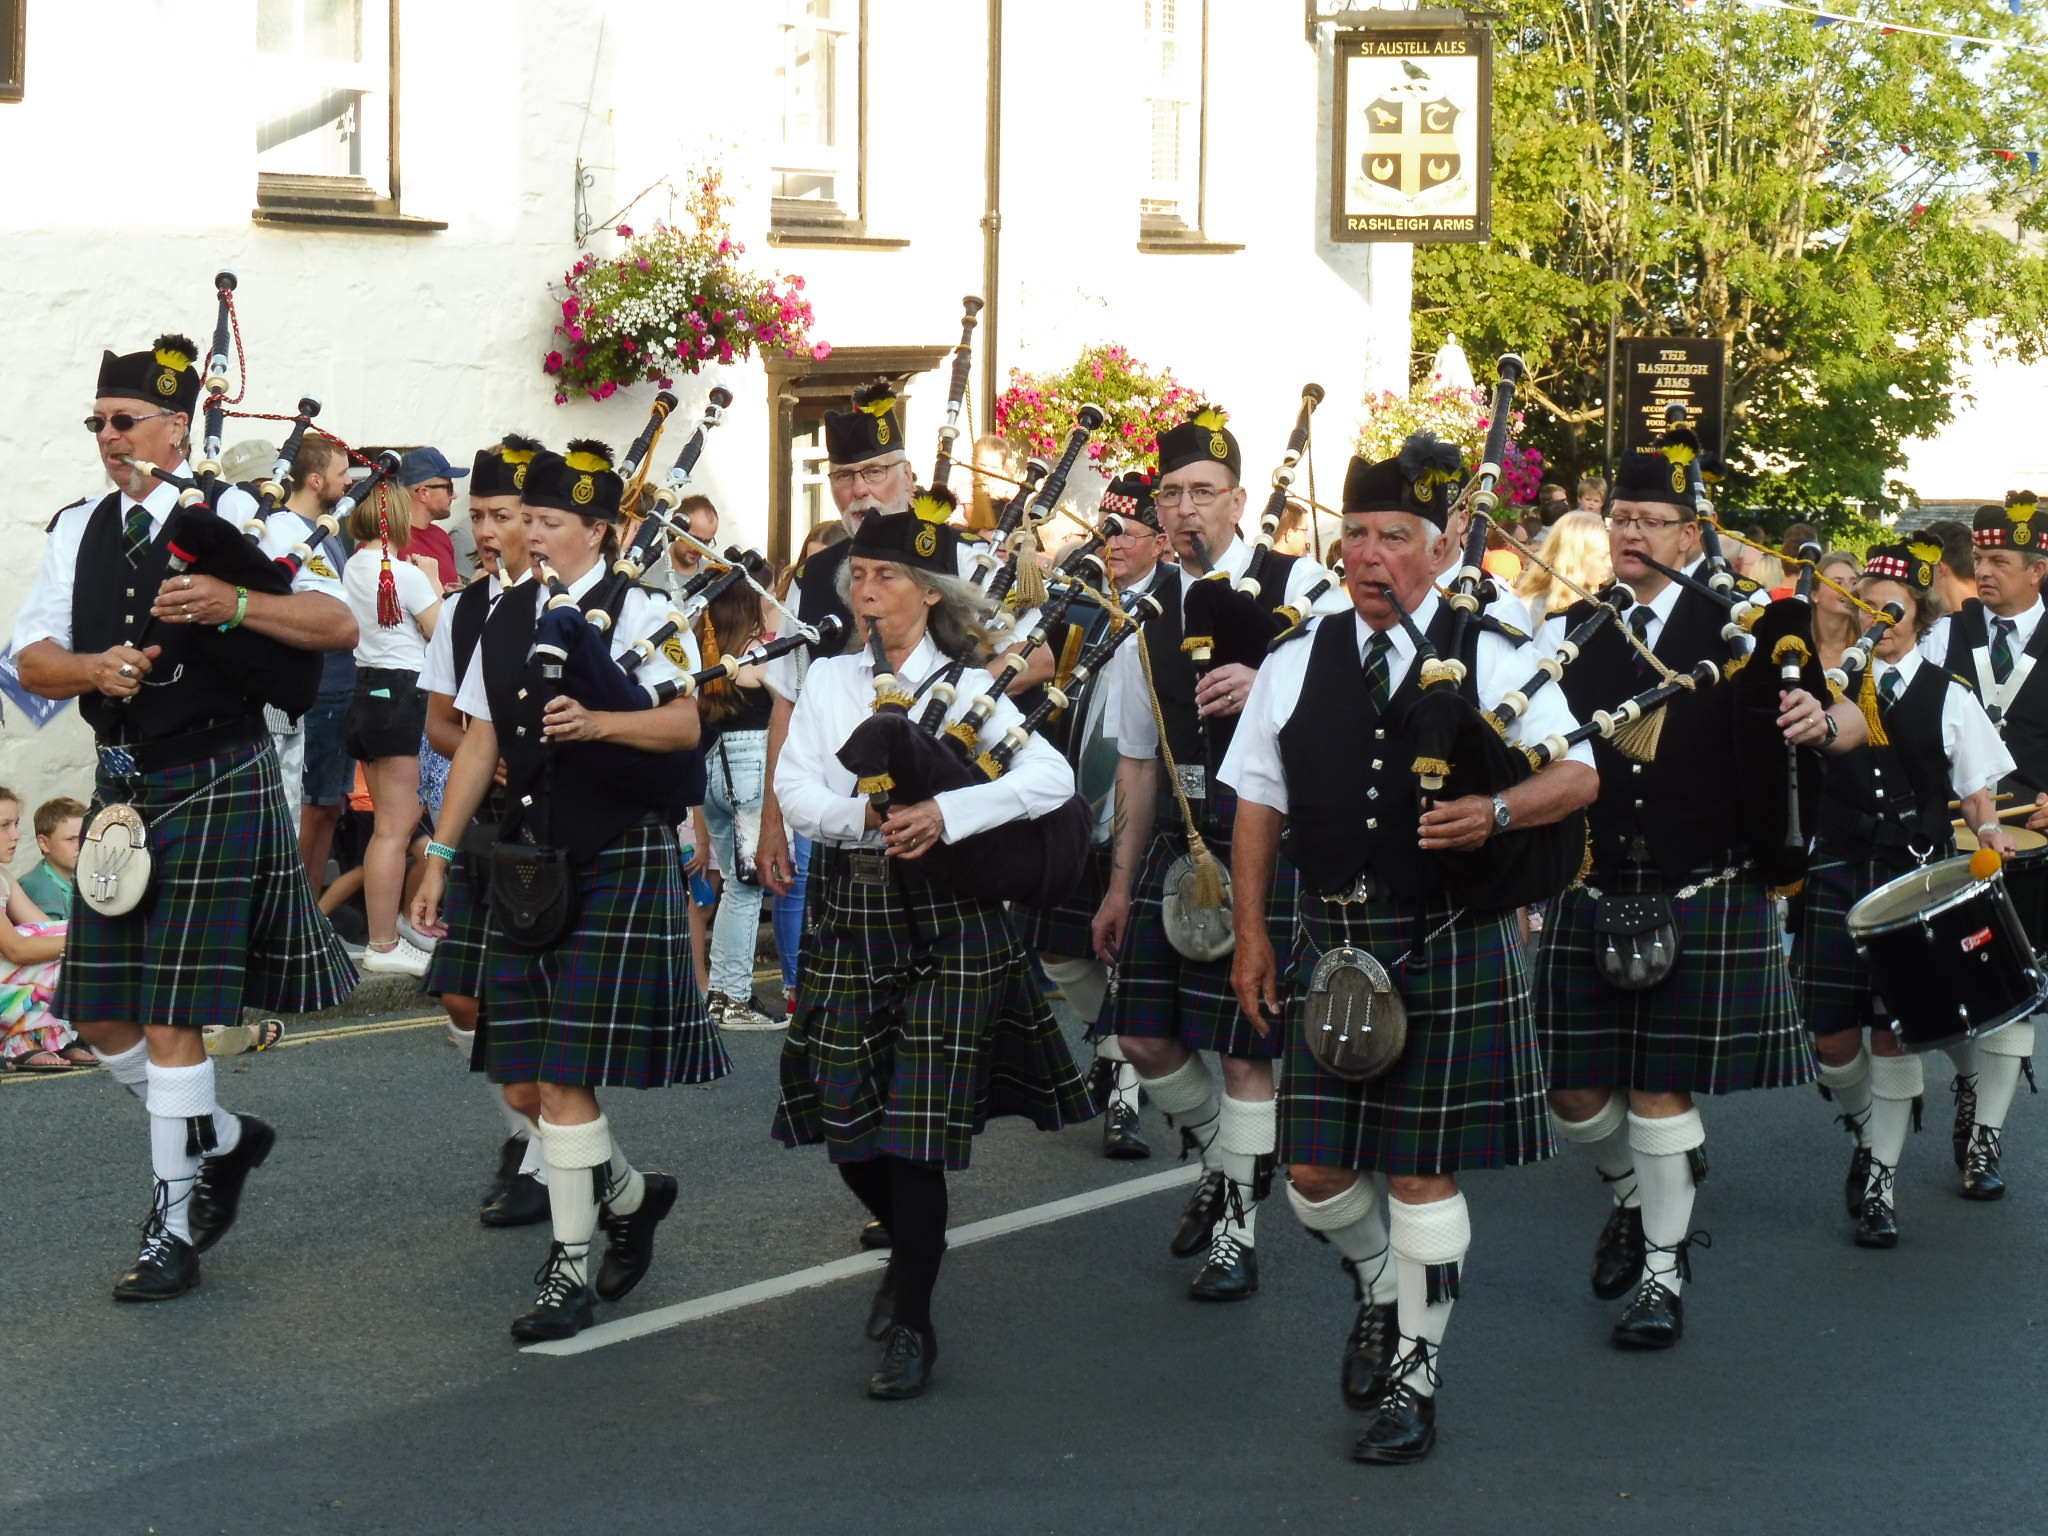 Kernow Pipes and Drums at Charlestown Carnival 2019